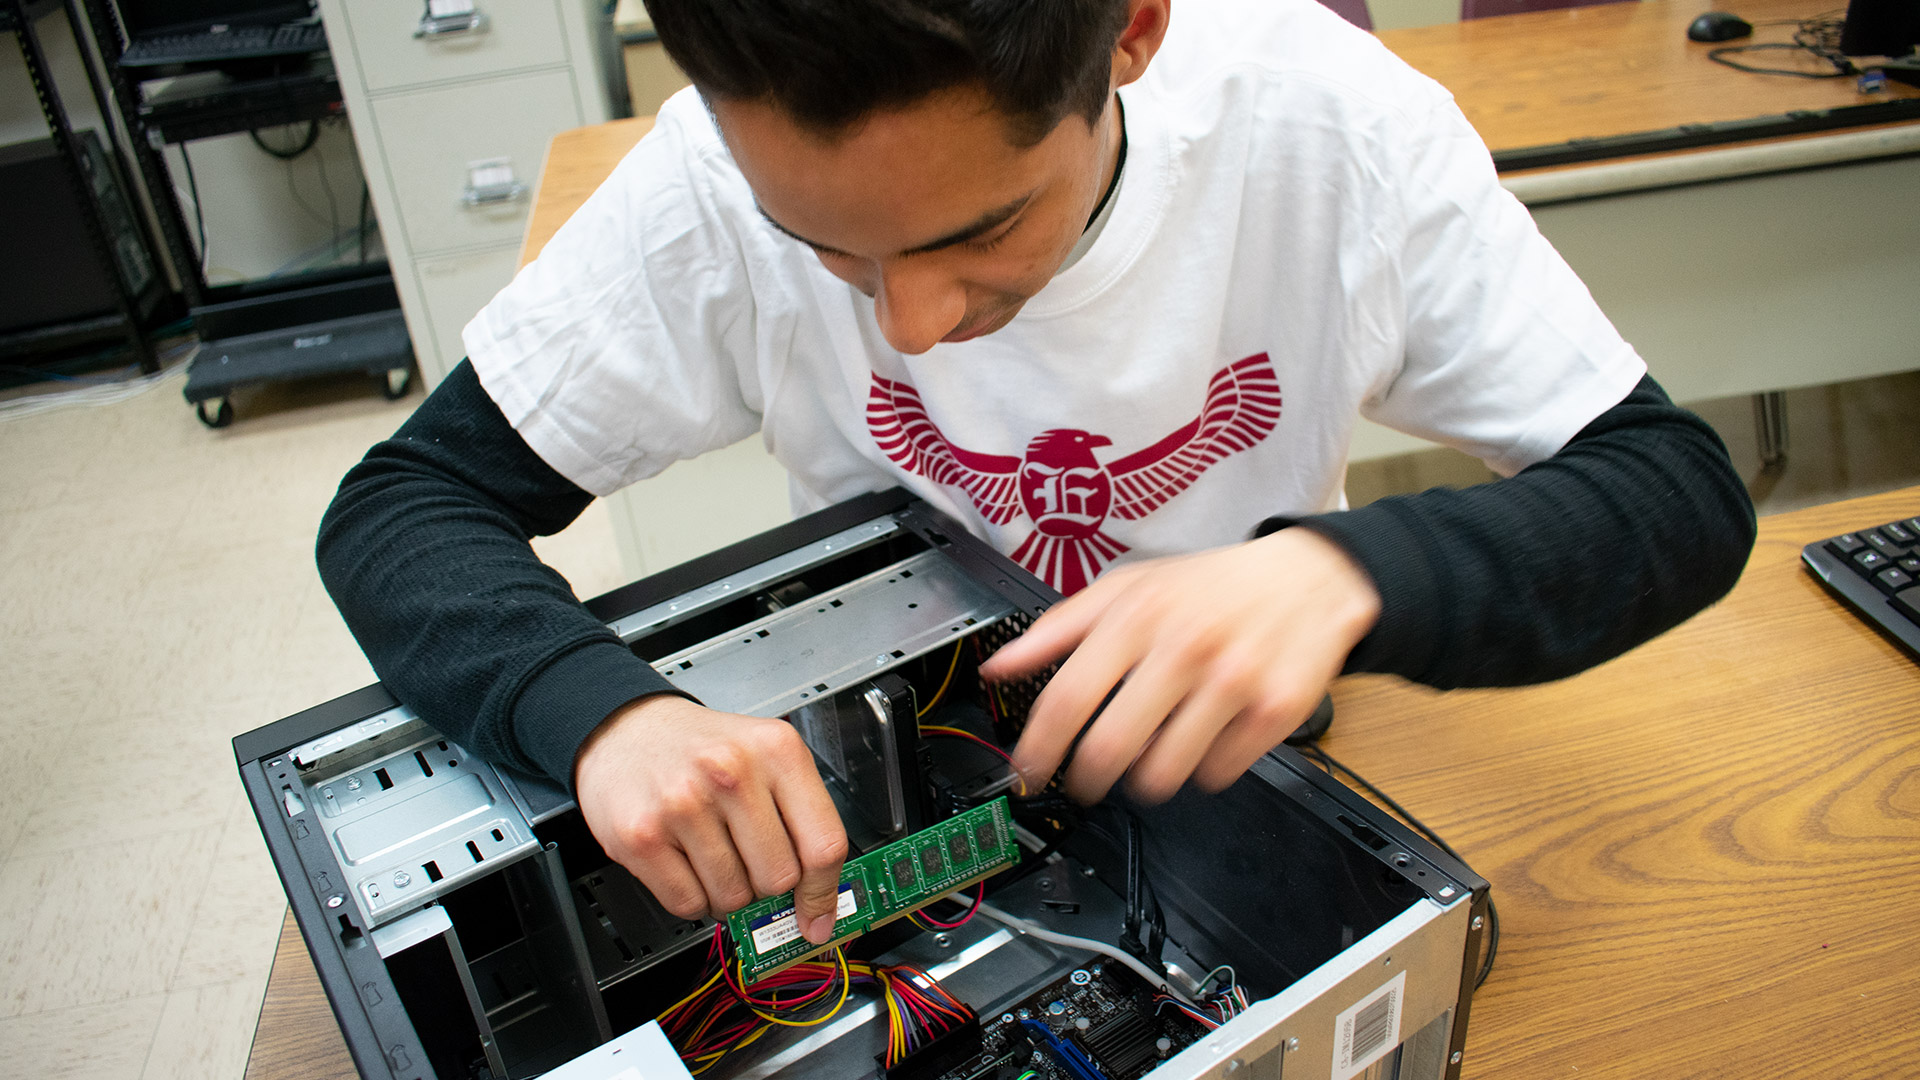 IT student students circuit inside computer